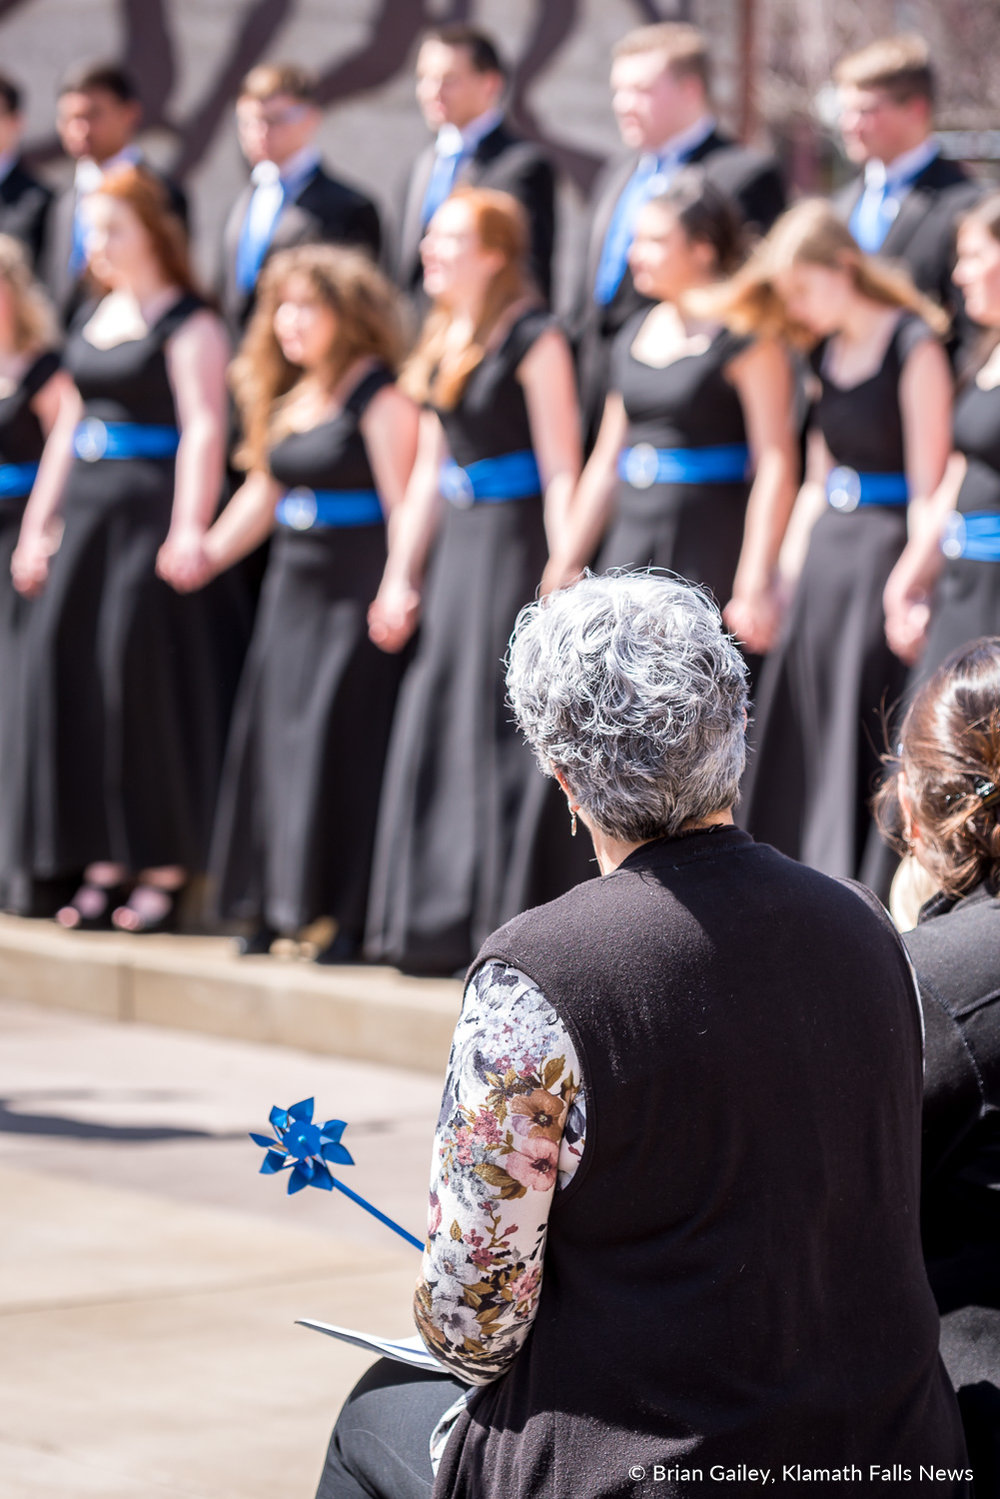 Klamath Falls Mayor, Carol Westfall watches as the Henley High School Touch of Class preforms in front of 200 at Sugarman's Corner in Downtown Klamath Falls to celebrate a Day of Hope. Hope that child abuse can be eradicated. April 4, 2018 (Brian Gailey)